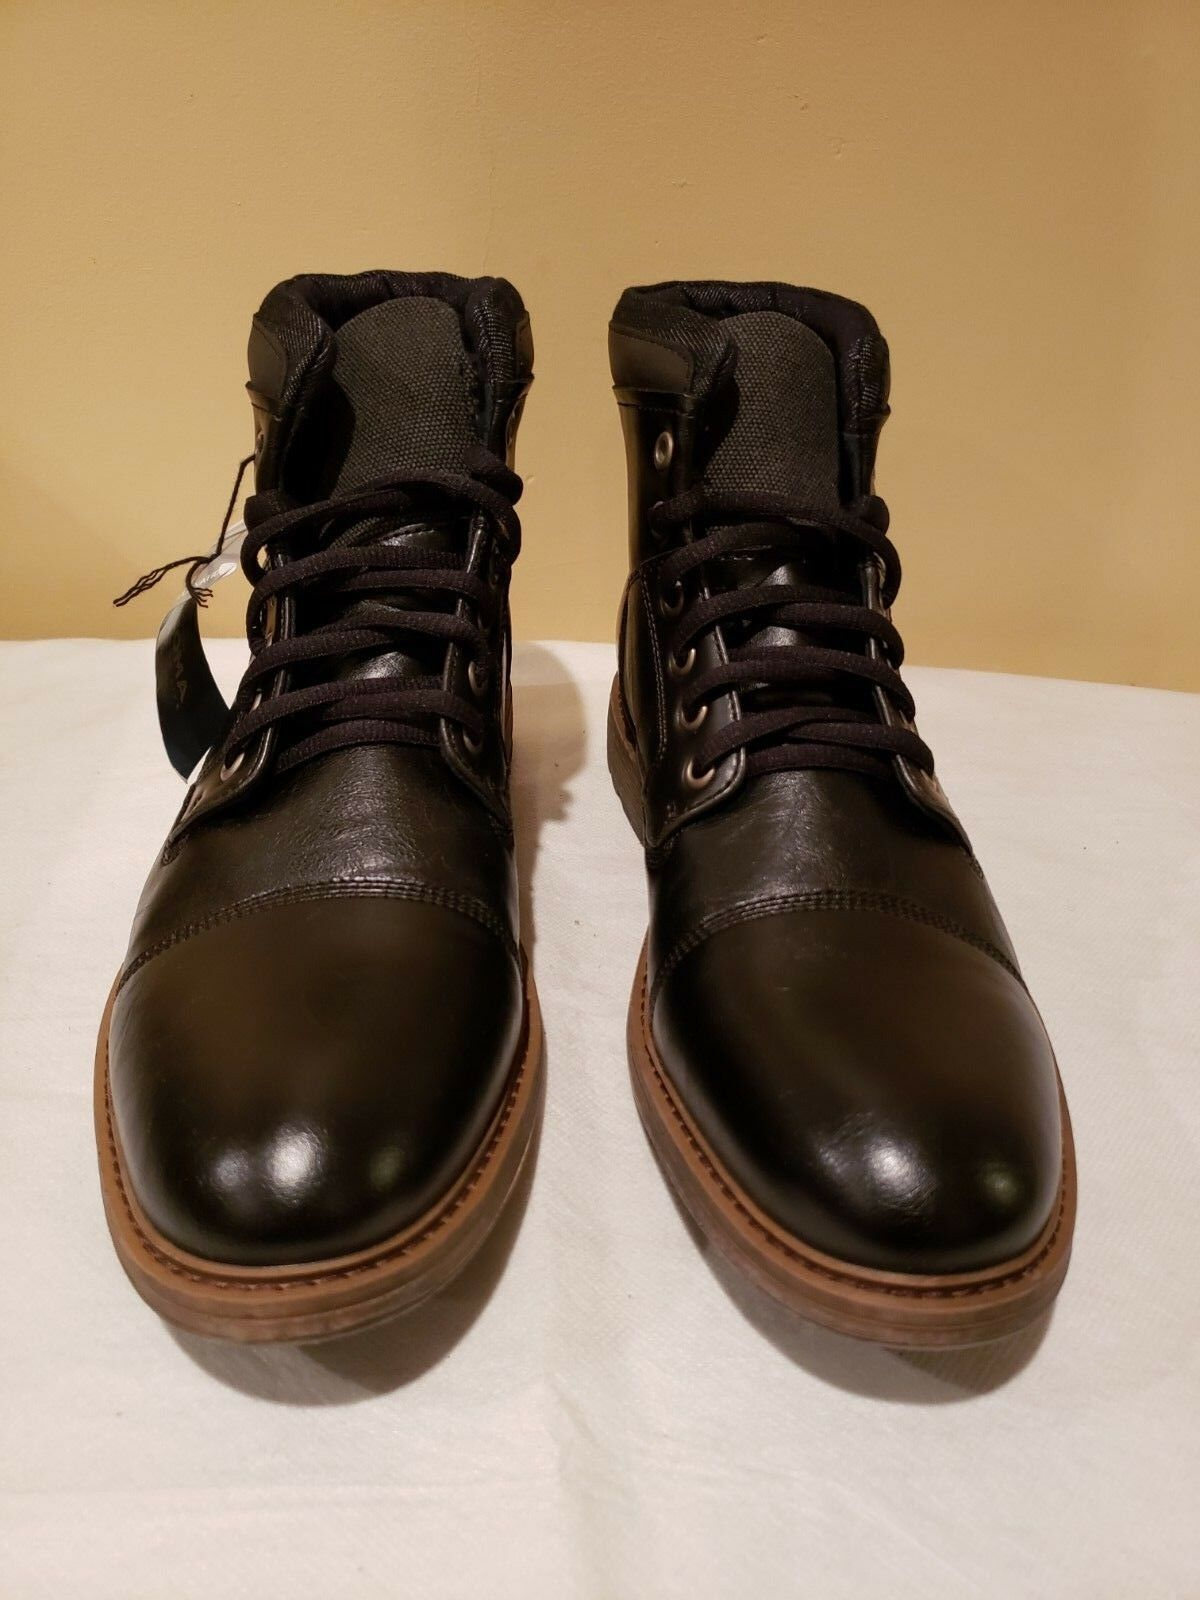 8ecaad0e76e ... SONOMA Goods For Life Vitalize By Ortholite Ortholite Ortholite Mens Black  Ankle Boots Sz 9M- ...